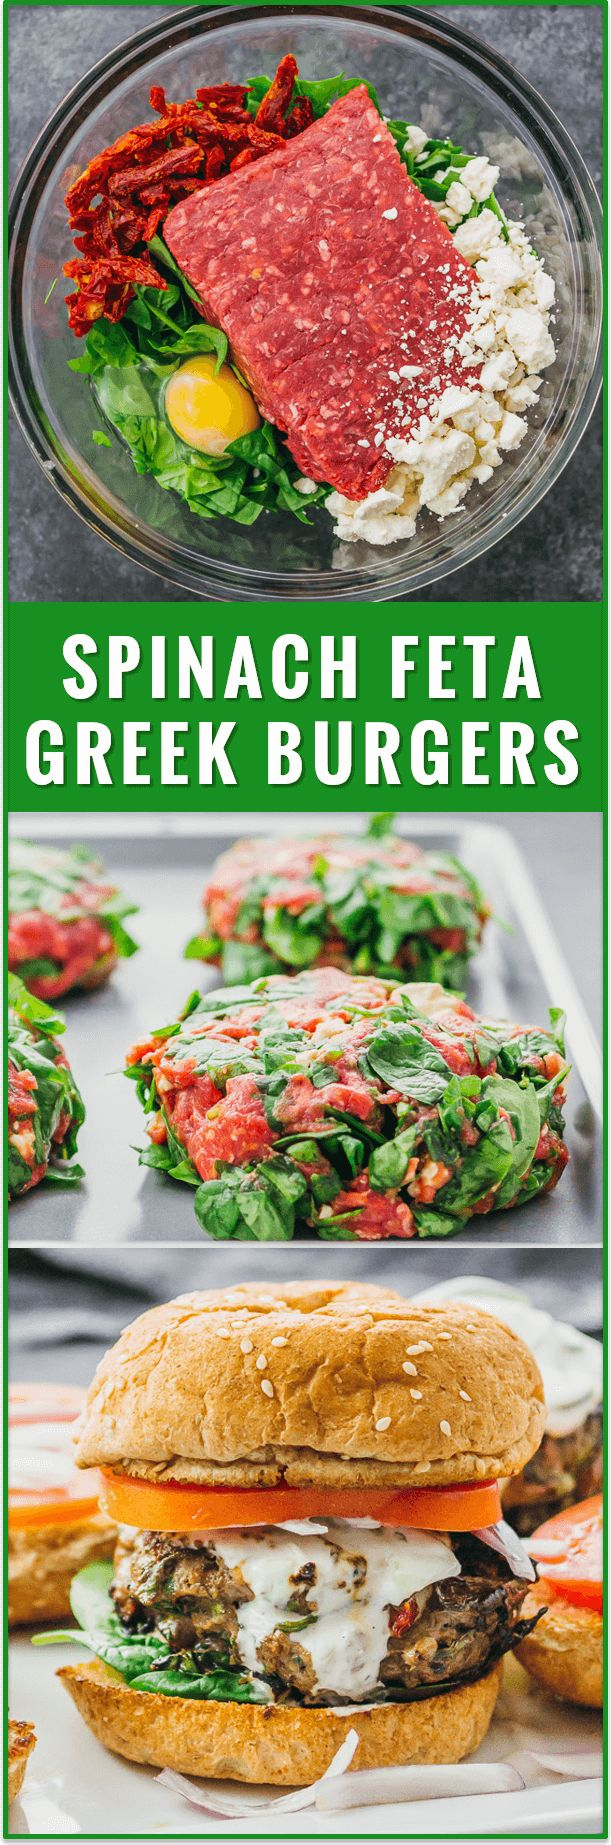 #These #healthy #Greek #burgers are made using ground #beef mixed with #spinach, #feta, and #sun-dried #tomatoes, plus #drizzled with a #delicious #tzatziki sauce. easy, recipe, #turkey, #garlic, #lamb, #chicken, 21 day fix, #sides, #sauce, #seasoning, #toppings, #mediterranean, #dinner, #lunch, #grilling, #summer #Recipes #Recipesgrowtopia #recipesmycafe #recipespixelworld #recipesgt #recipescake #recipeschicken #recipesliquid #food